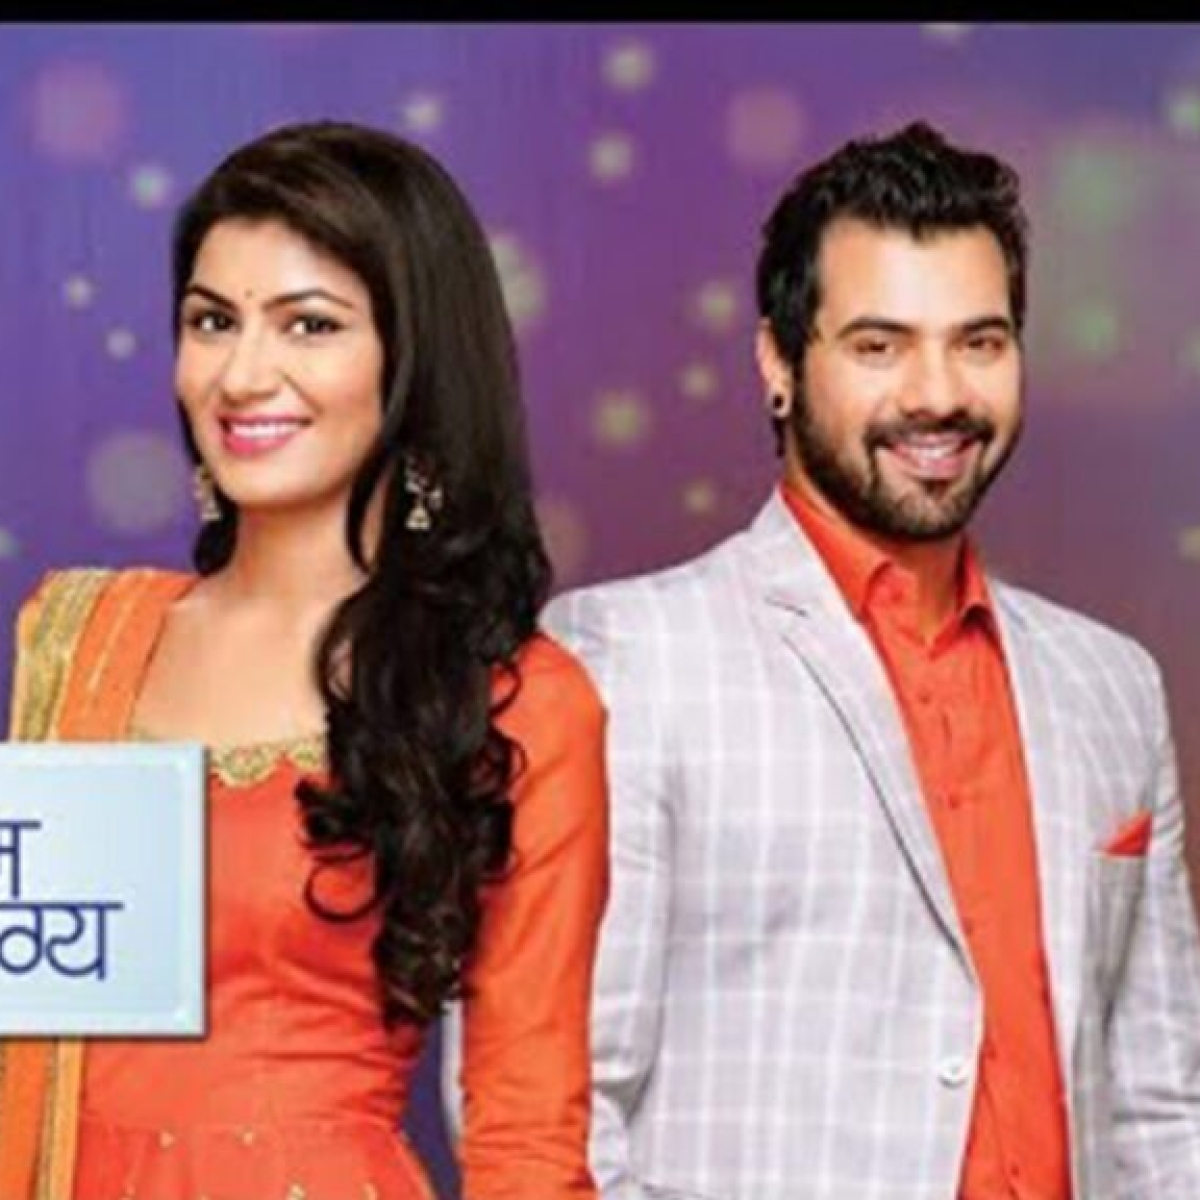 Fire breaks out on 'Kumkum Bhagya' set, Sriti Jha says she is 'absolutely safe'